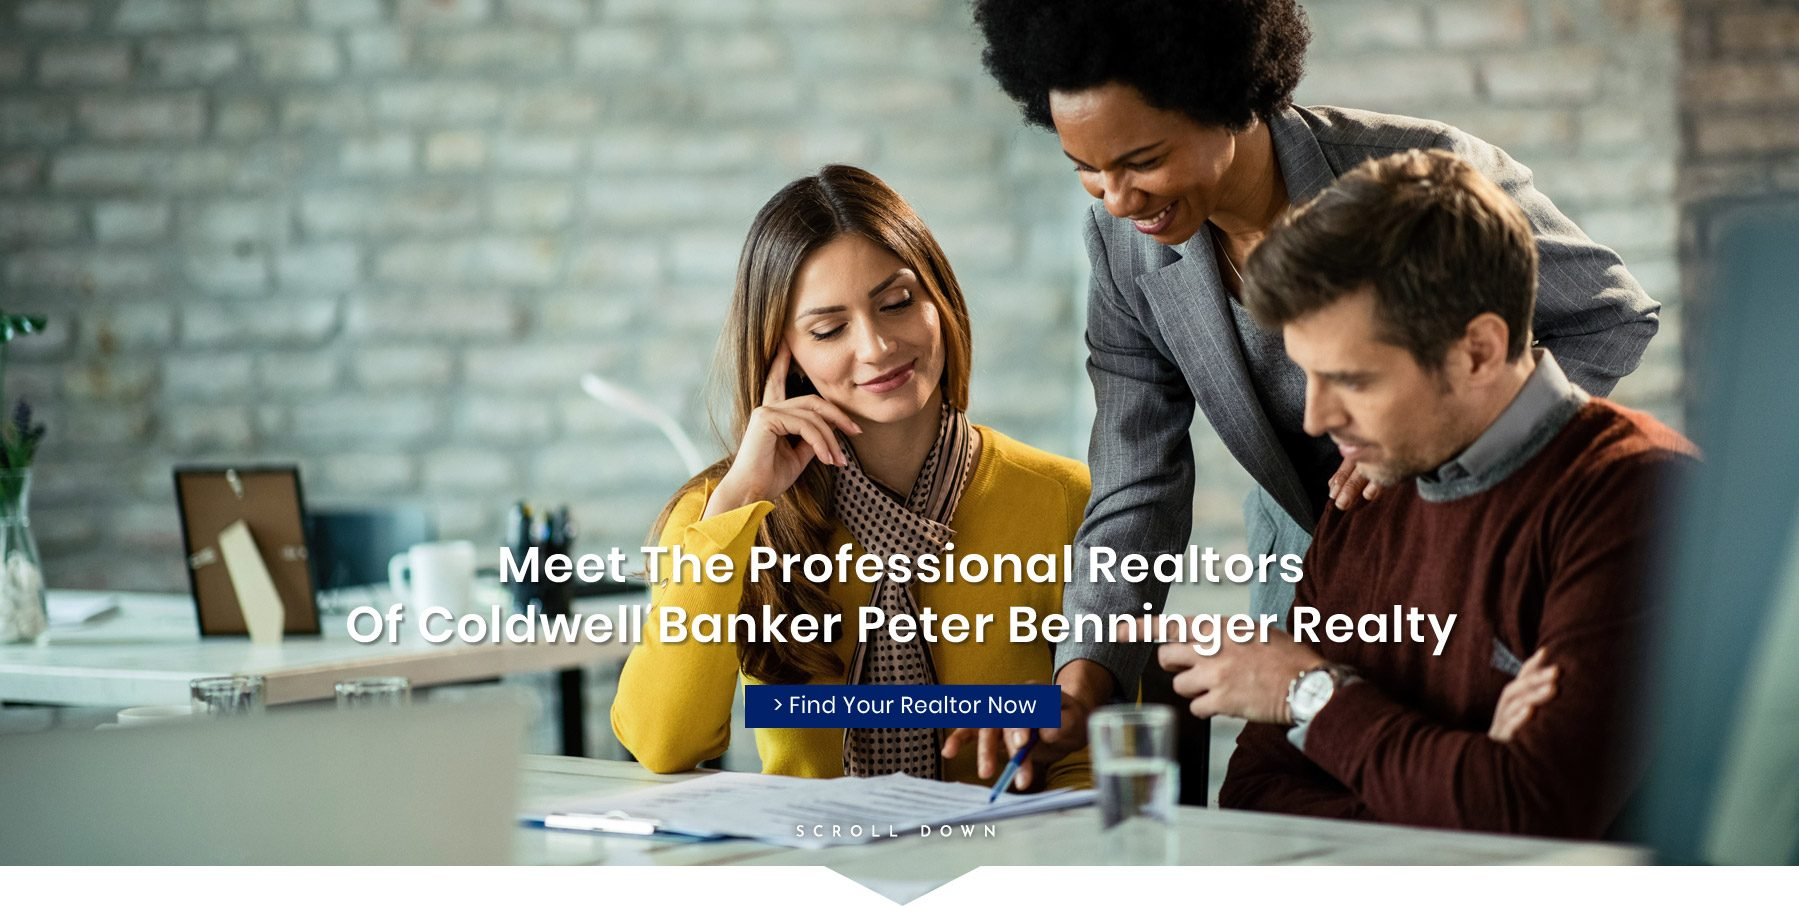 Meet Our Professional Realtors